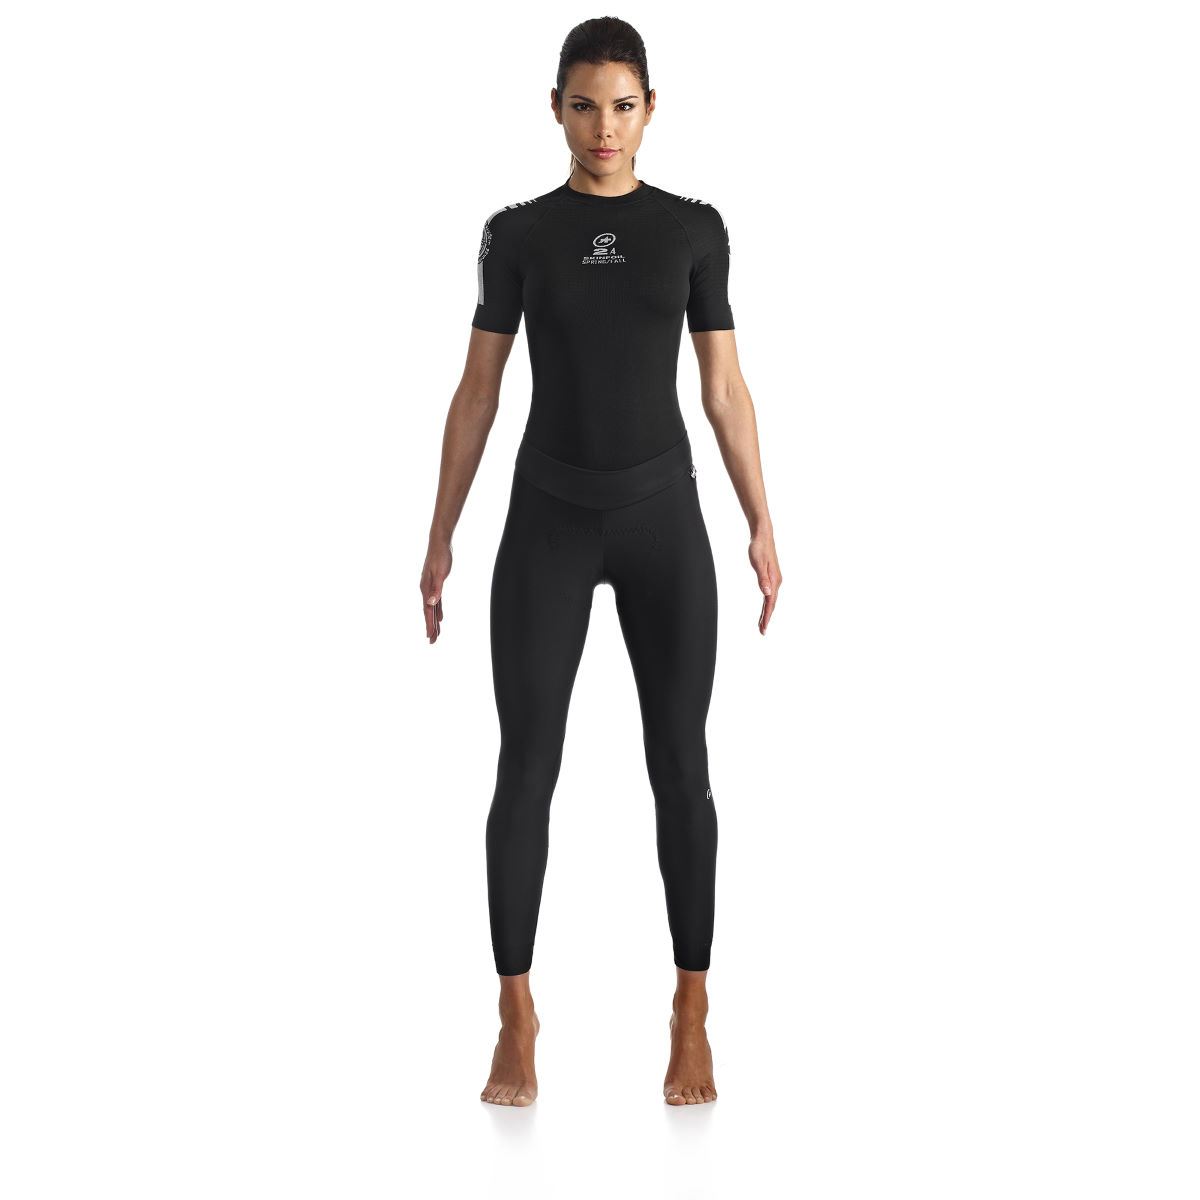 Collant Femme Assos HL.tiburu_s7 - S Block Black Cuissards longs de vélo